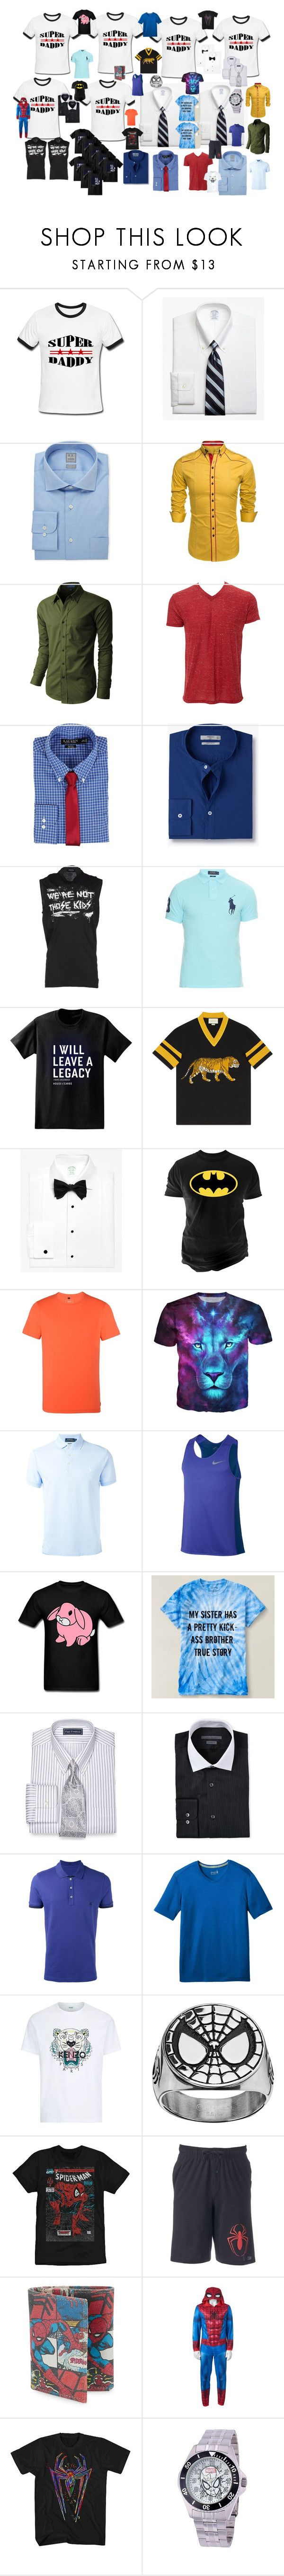 """""""Goodies For The Men"""" by airandearth on Polyvore featuring Brooks Brothers, Ike Behar, LE3NO, Simplex Apparel, Lauren Ralph Lauren, MANGO, Dsquared2, Polo Ralph Lauren, Paul Frank and Gucci"""